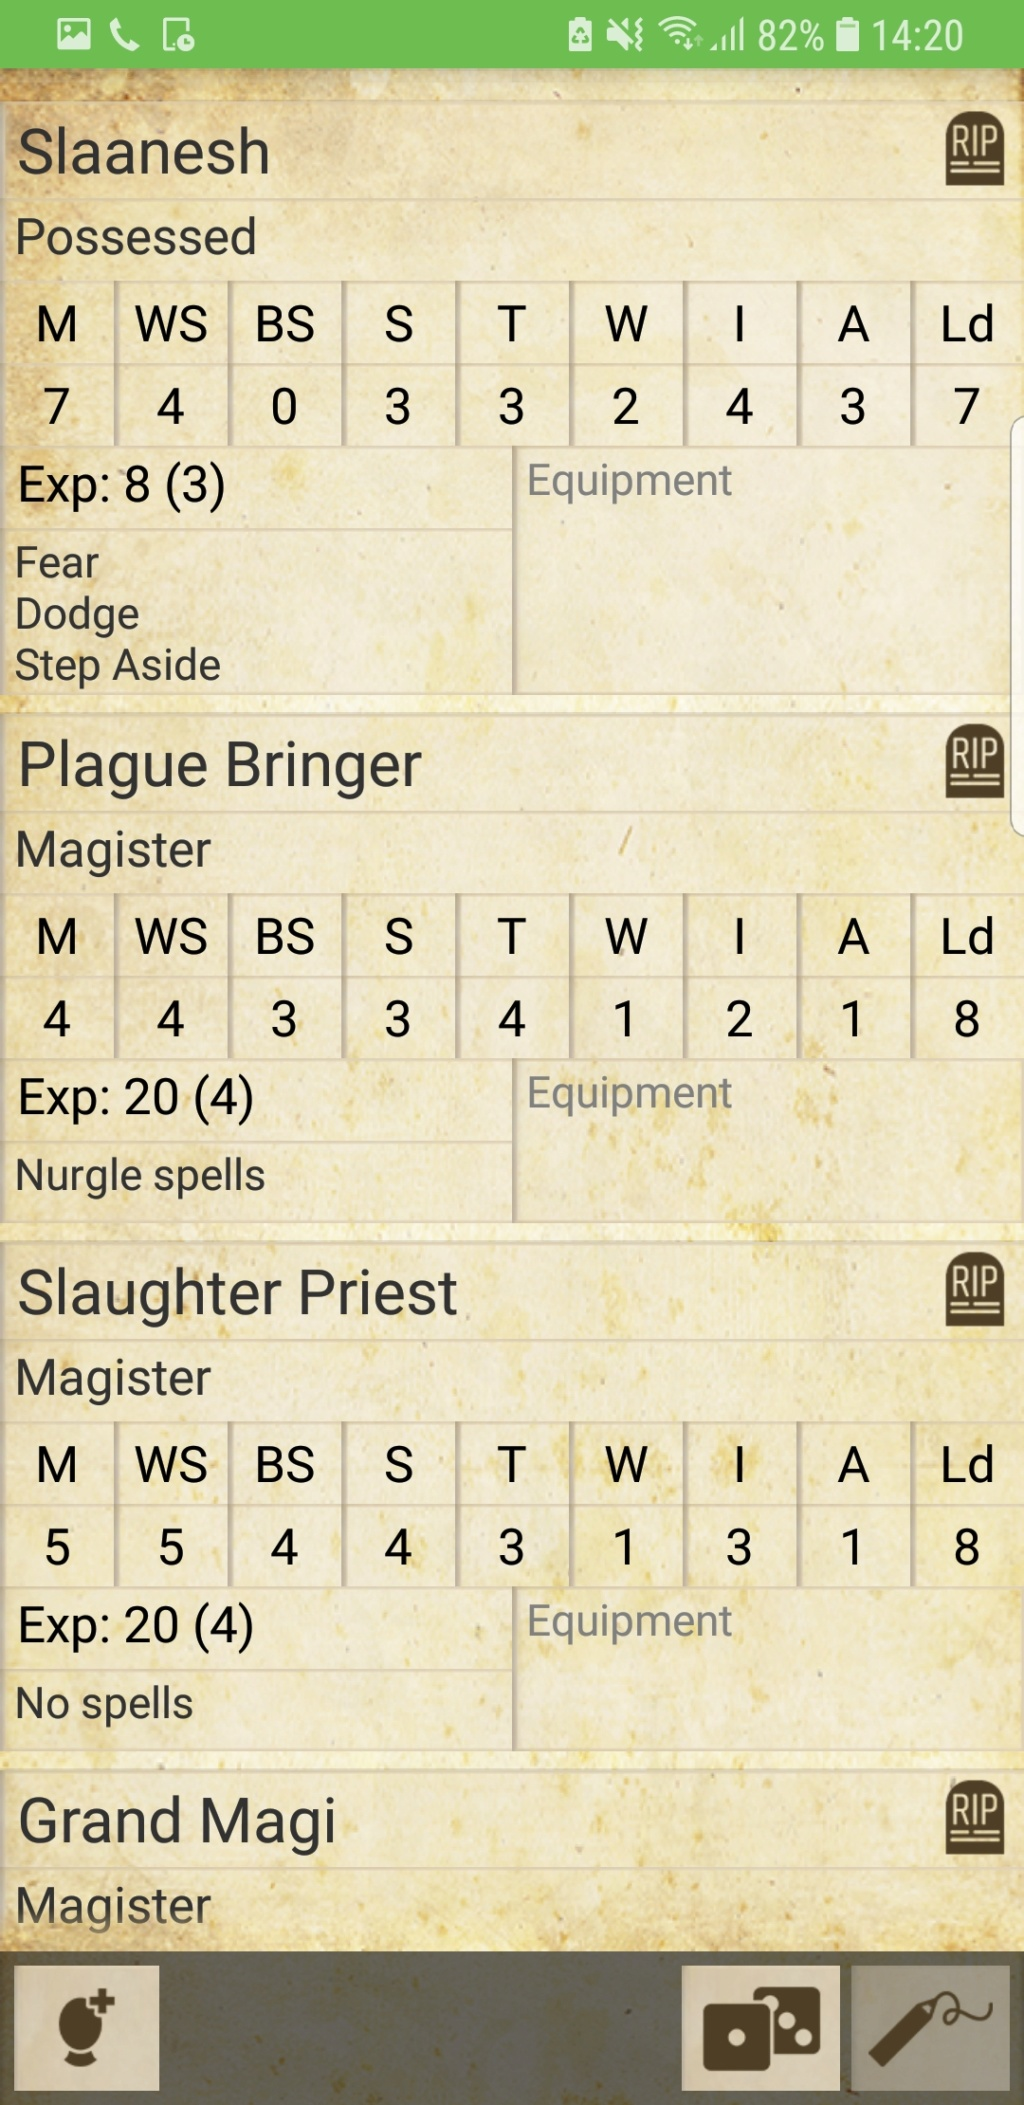 possessed - Possessed god dedicated warbands alternate rules Screen11